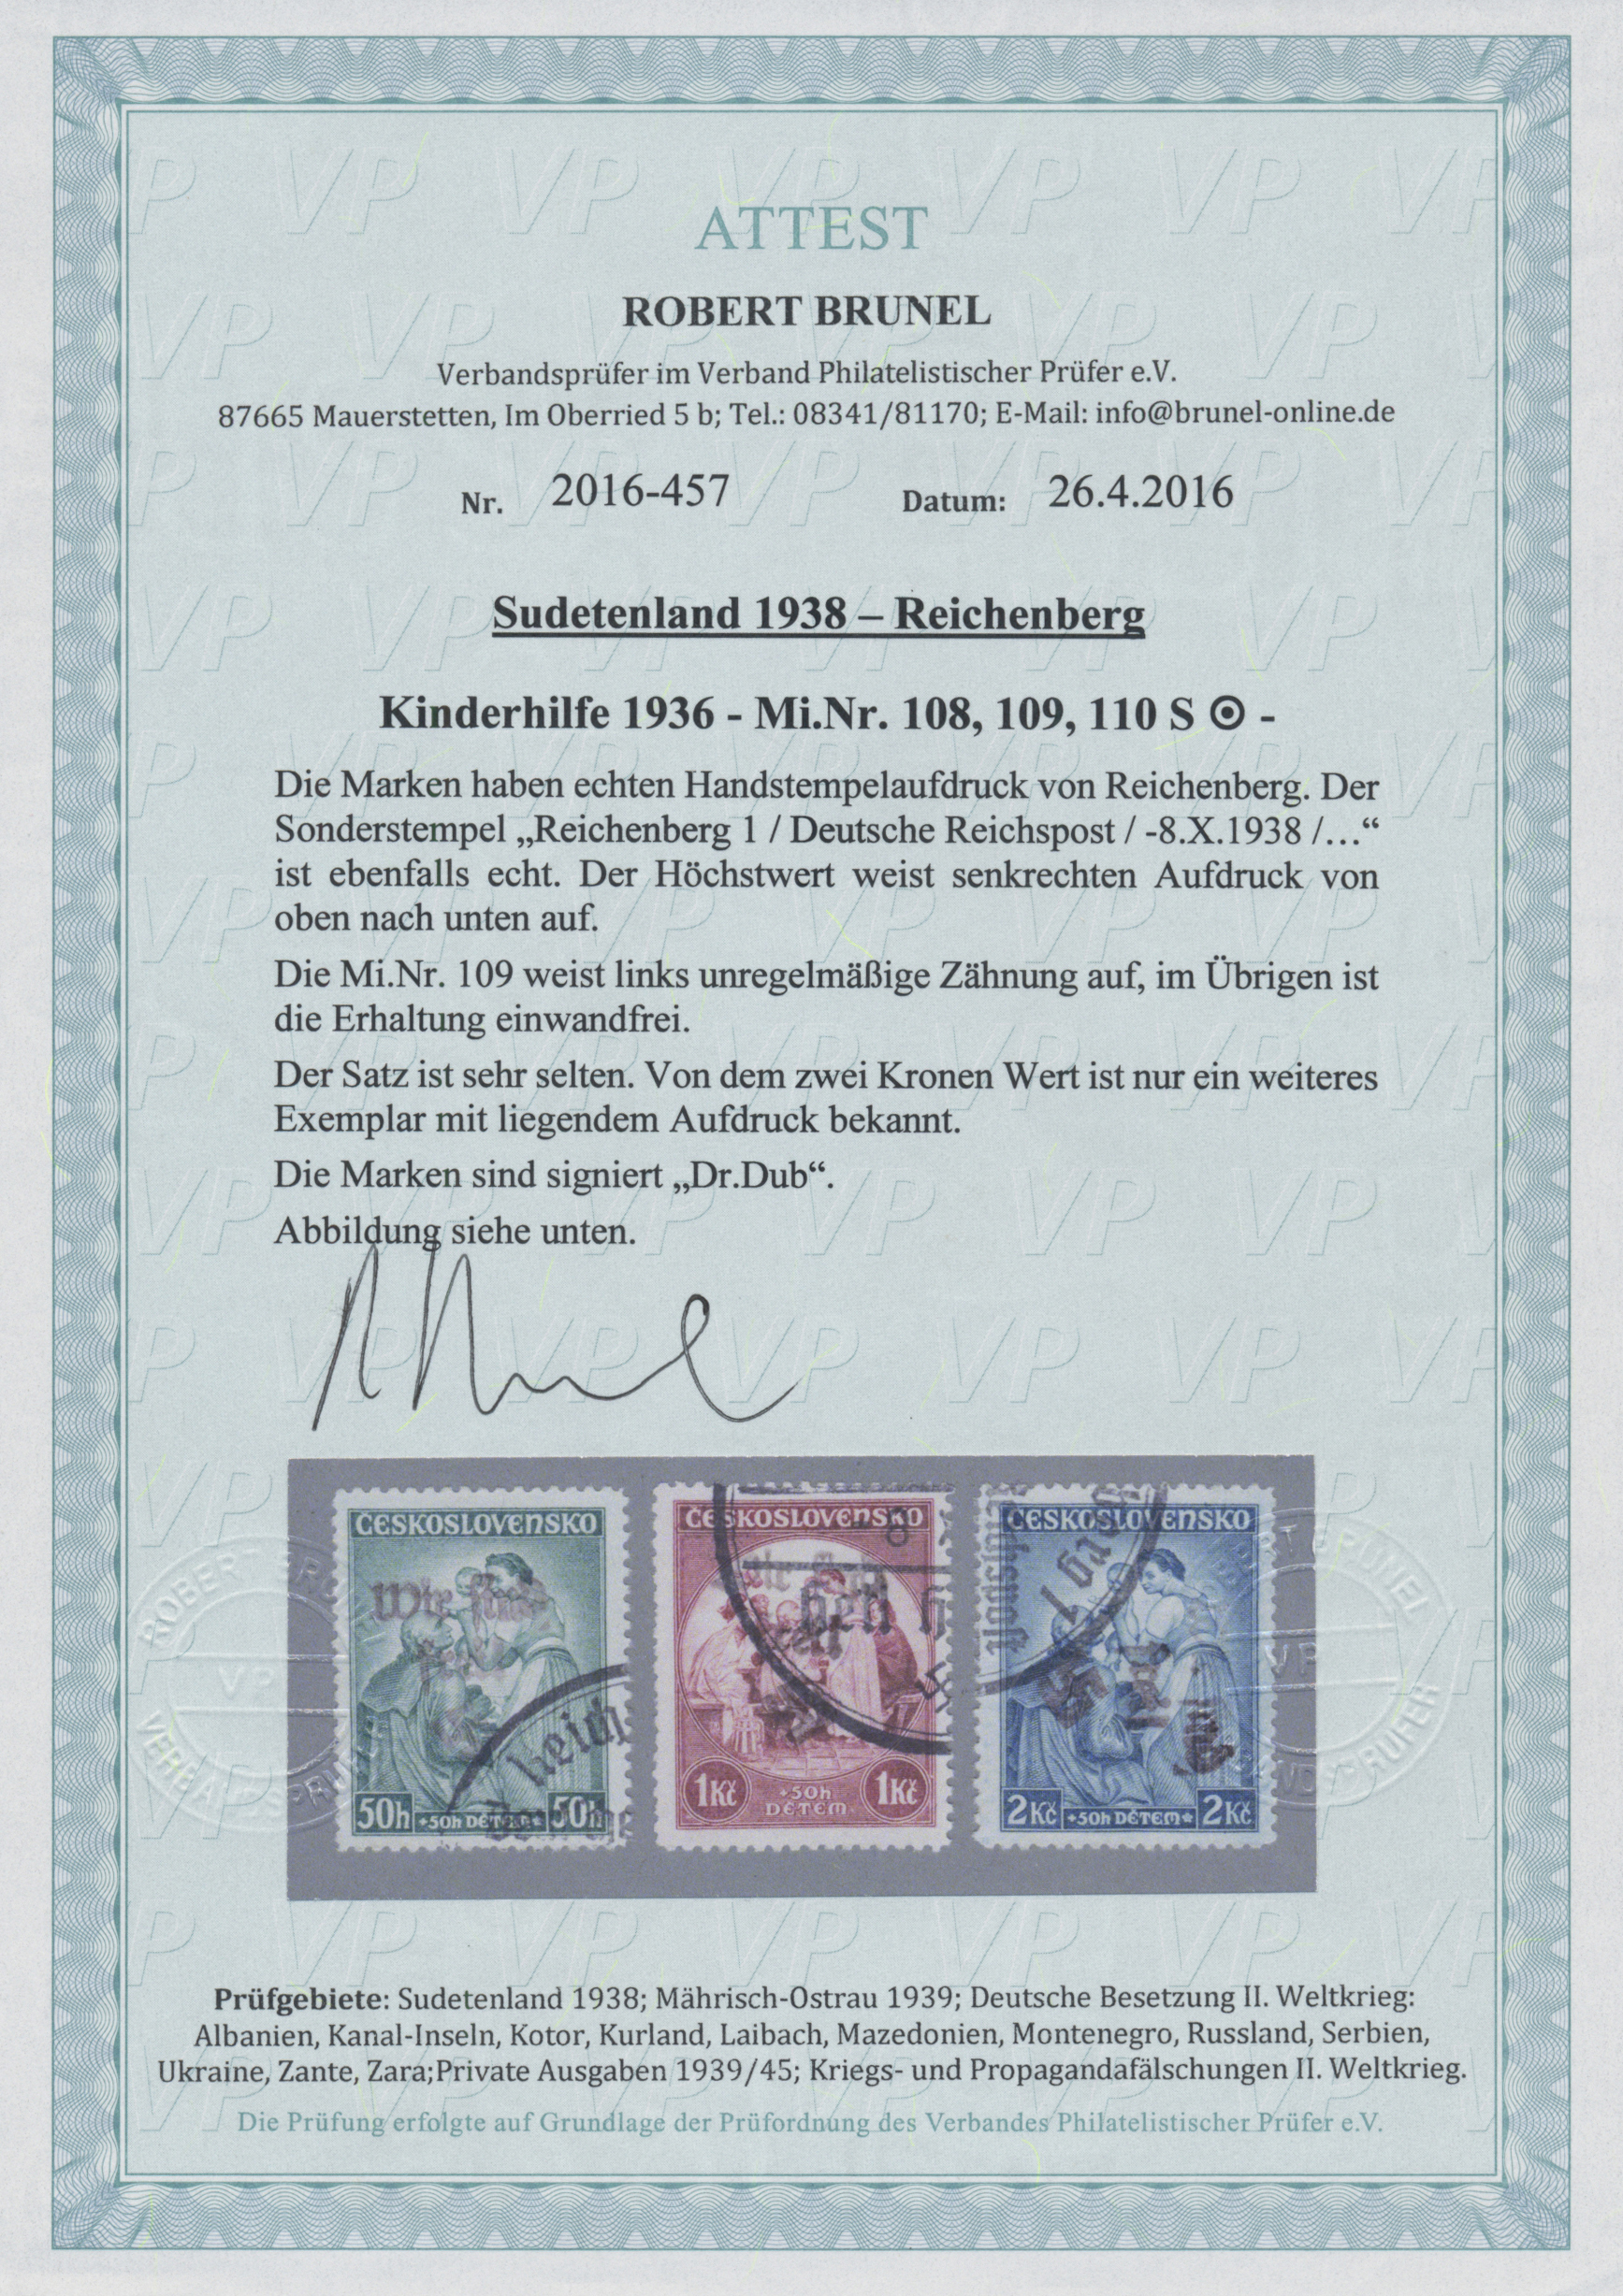 Lot 1370 - Sudetenland - Reichenberg  -  Auktionshaus Christoph Gärtner GmbH & Co. KG Auction #41 Special auction part two